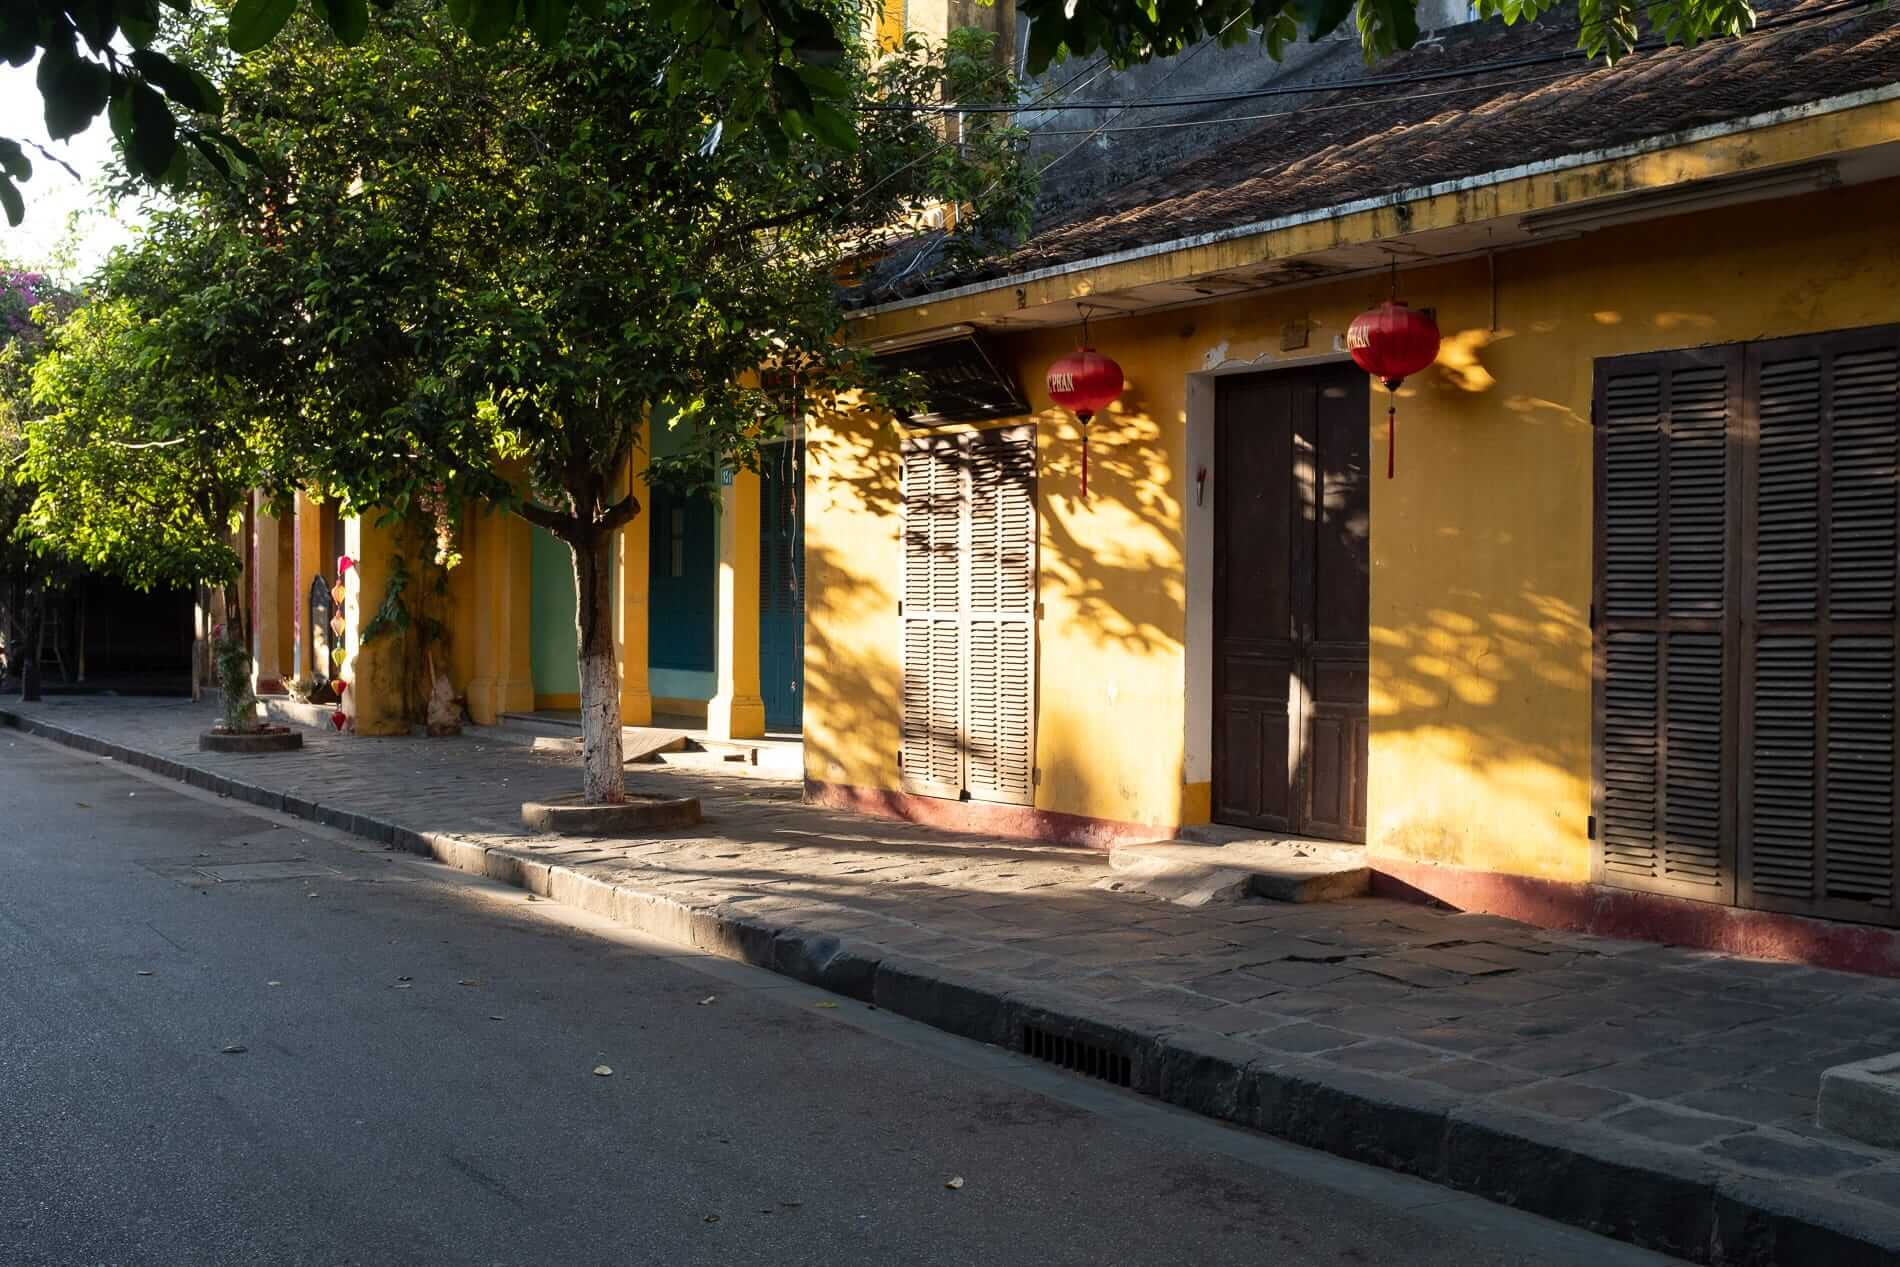 A calm morning at the Old Town, Hoi An